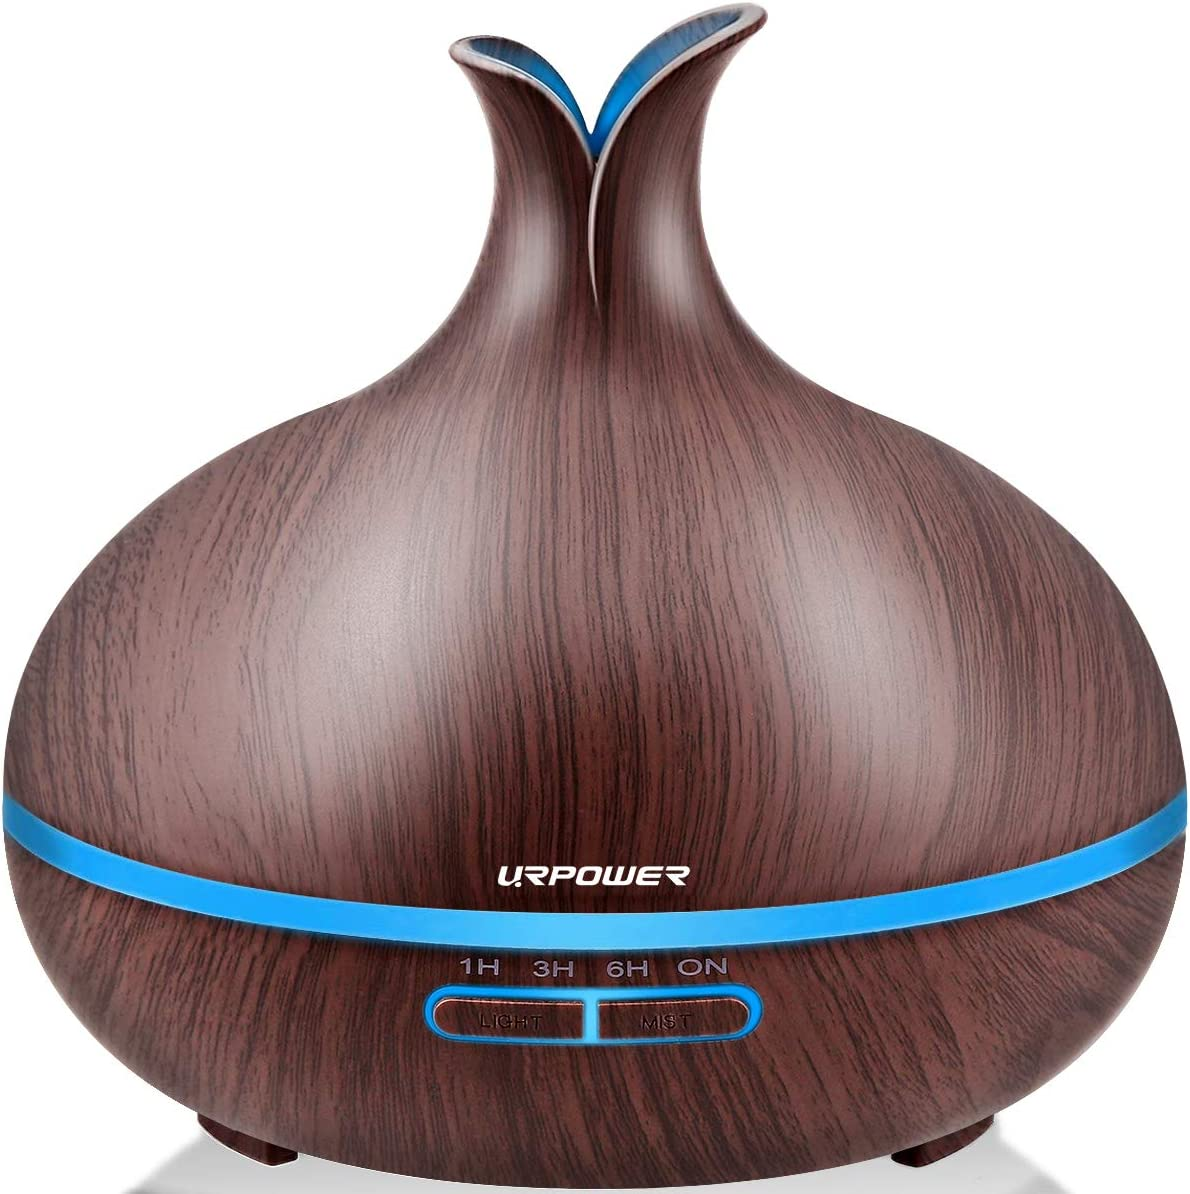 URPOWER 400ml Essential Oil Diffuser Wood Grain Diffuser with Auto Shut-Off, 7 Color Light Aromatherapy Oil Diffuser Humidifier and 4 Timer Settings Humidifiers for Bedroom Office